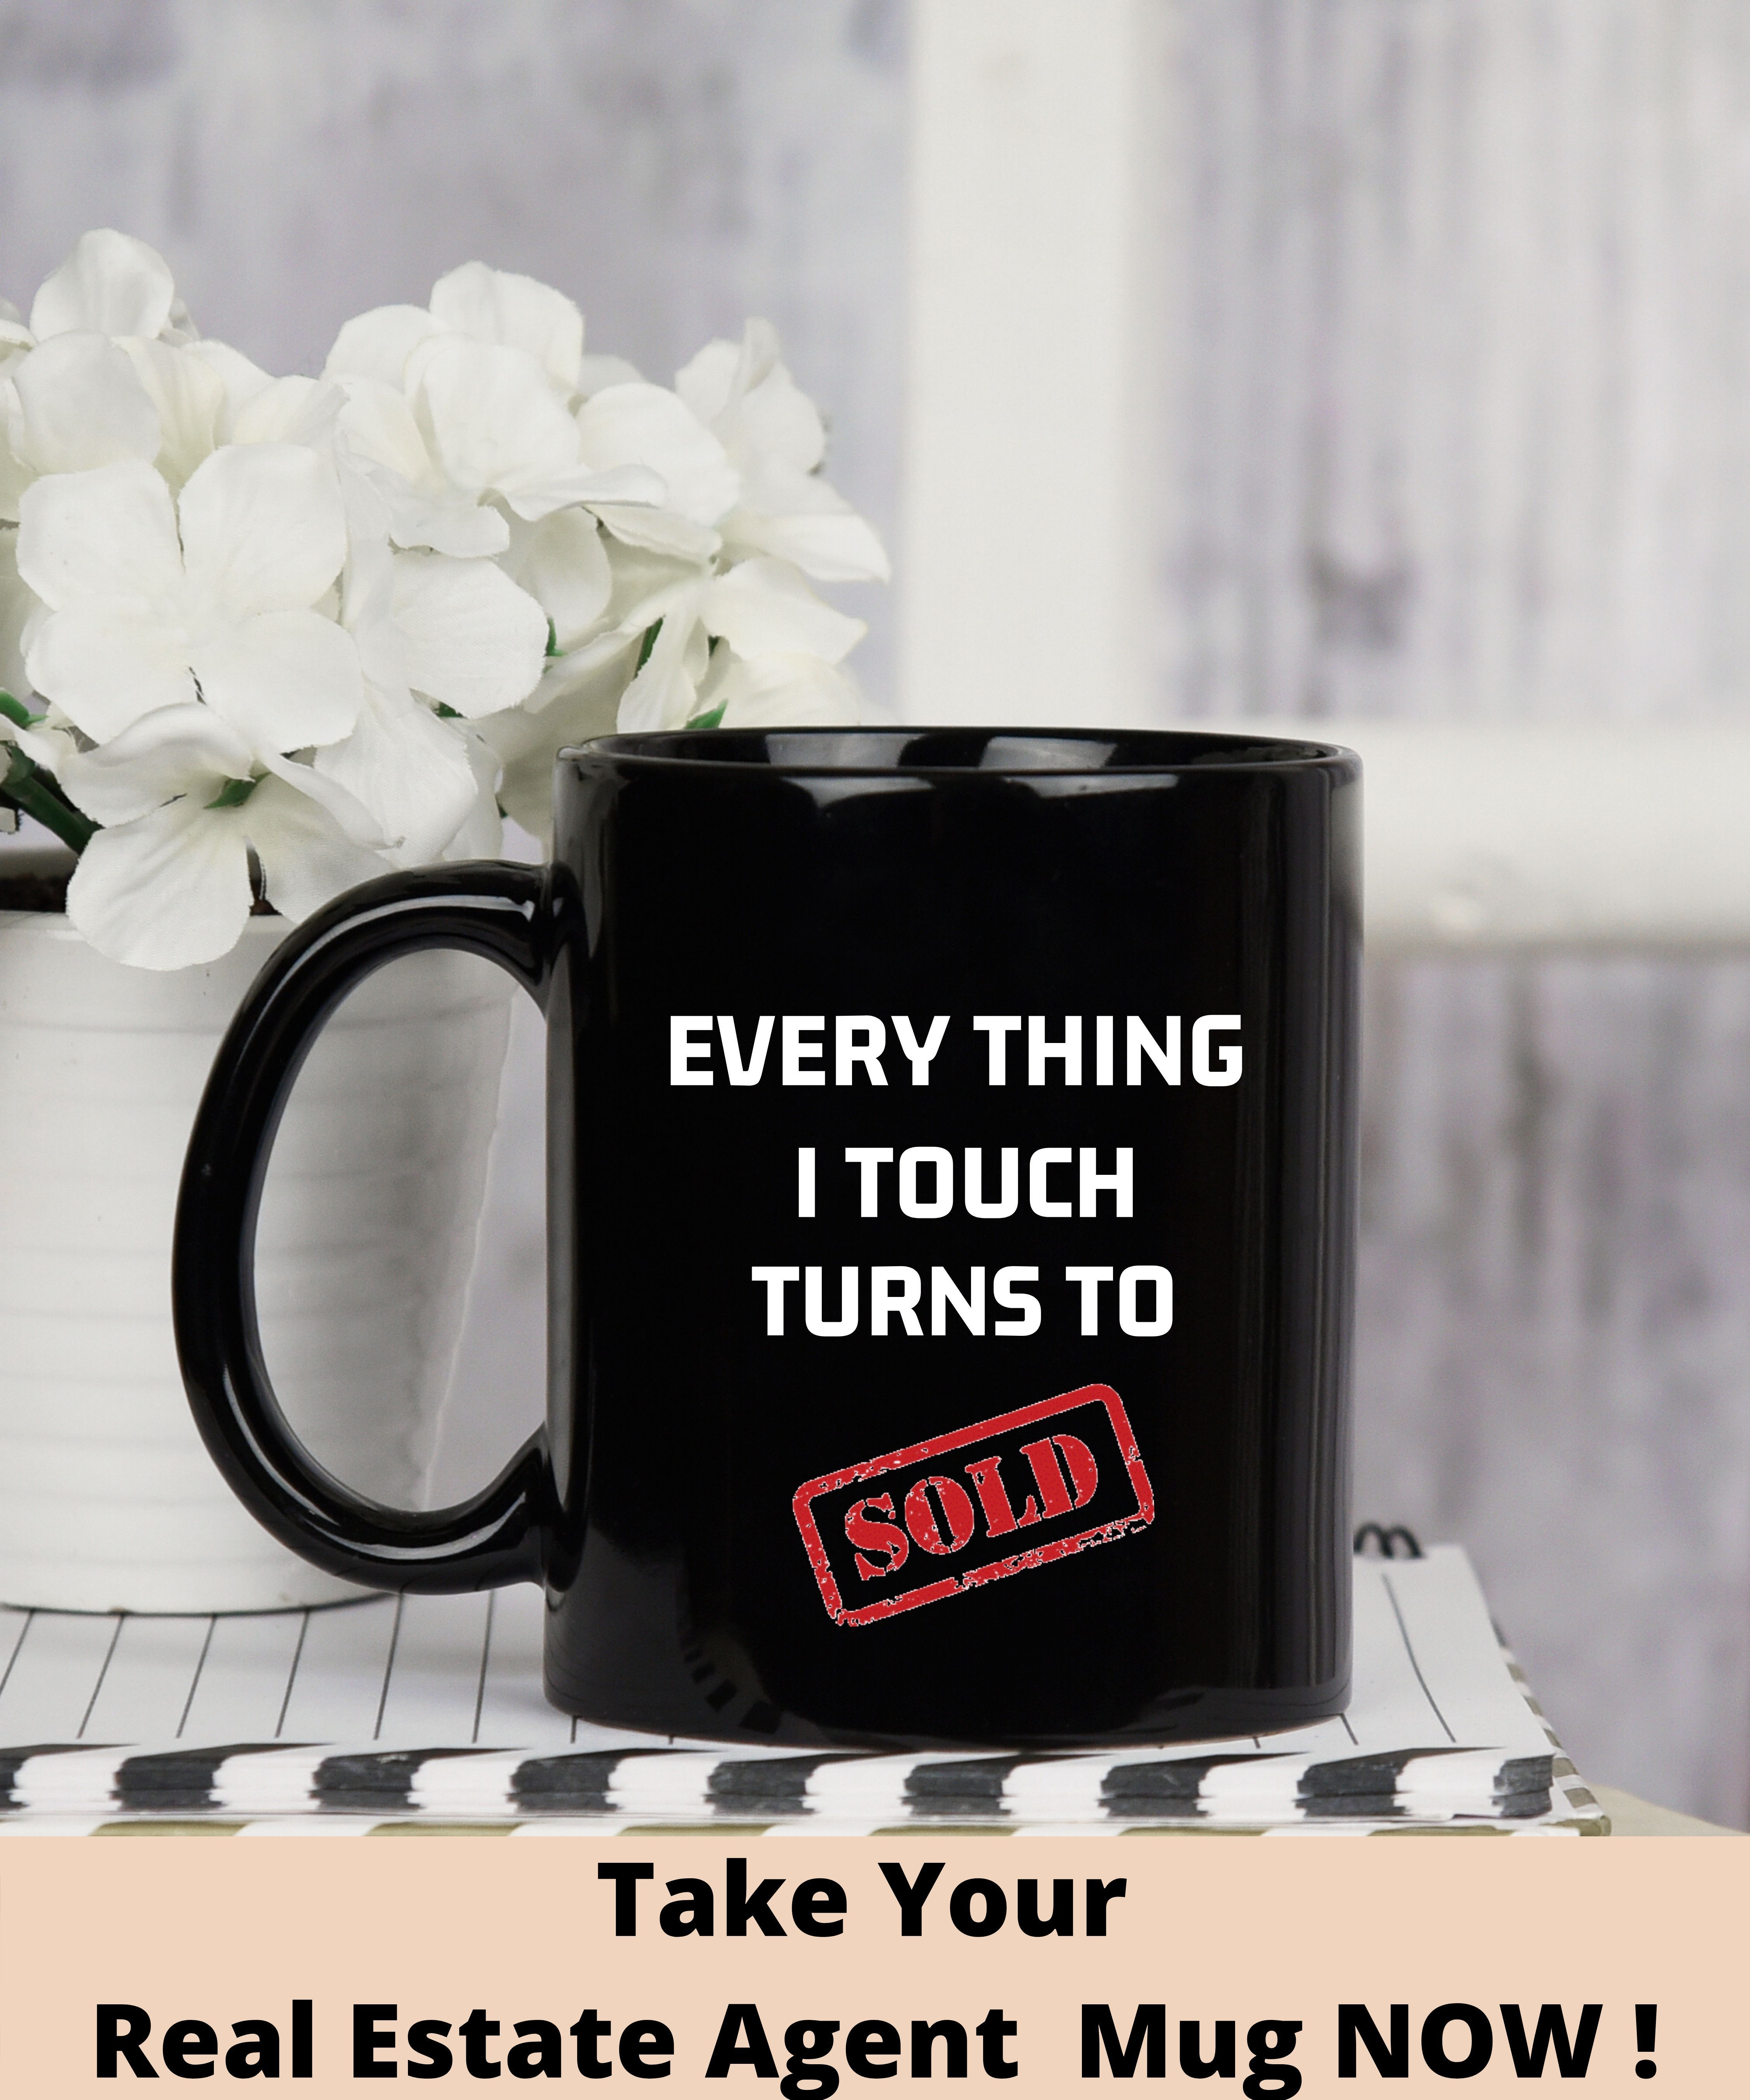 Keywords Realtor Marketing Gifts Gifts For A Realtor Realtor Gifts From Buyer In 2020 Real Estate Marketing Gifts Real Estate Agent Gift Real Estate Closing Gifts